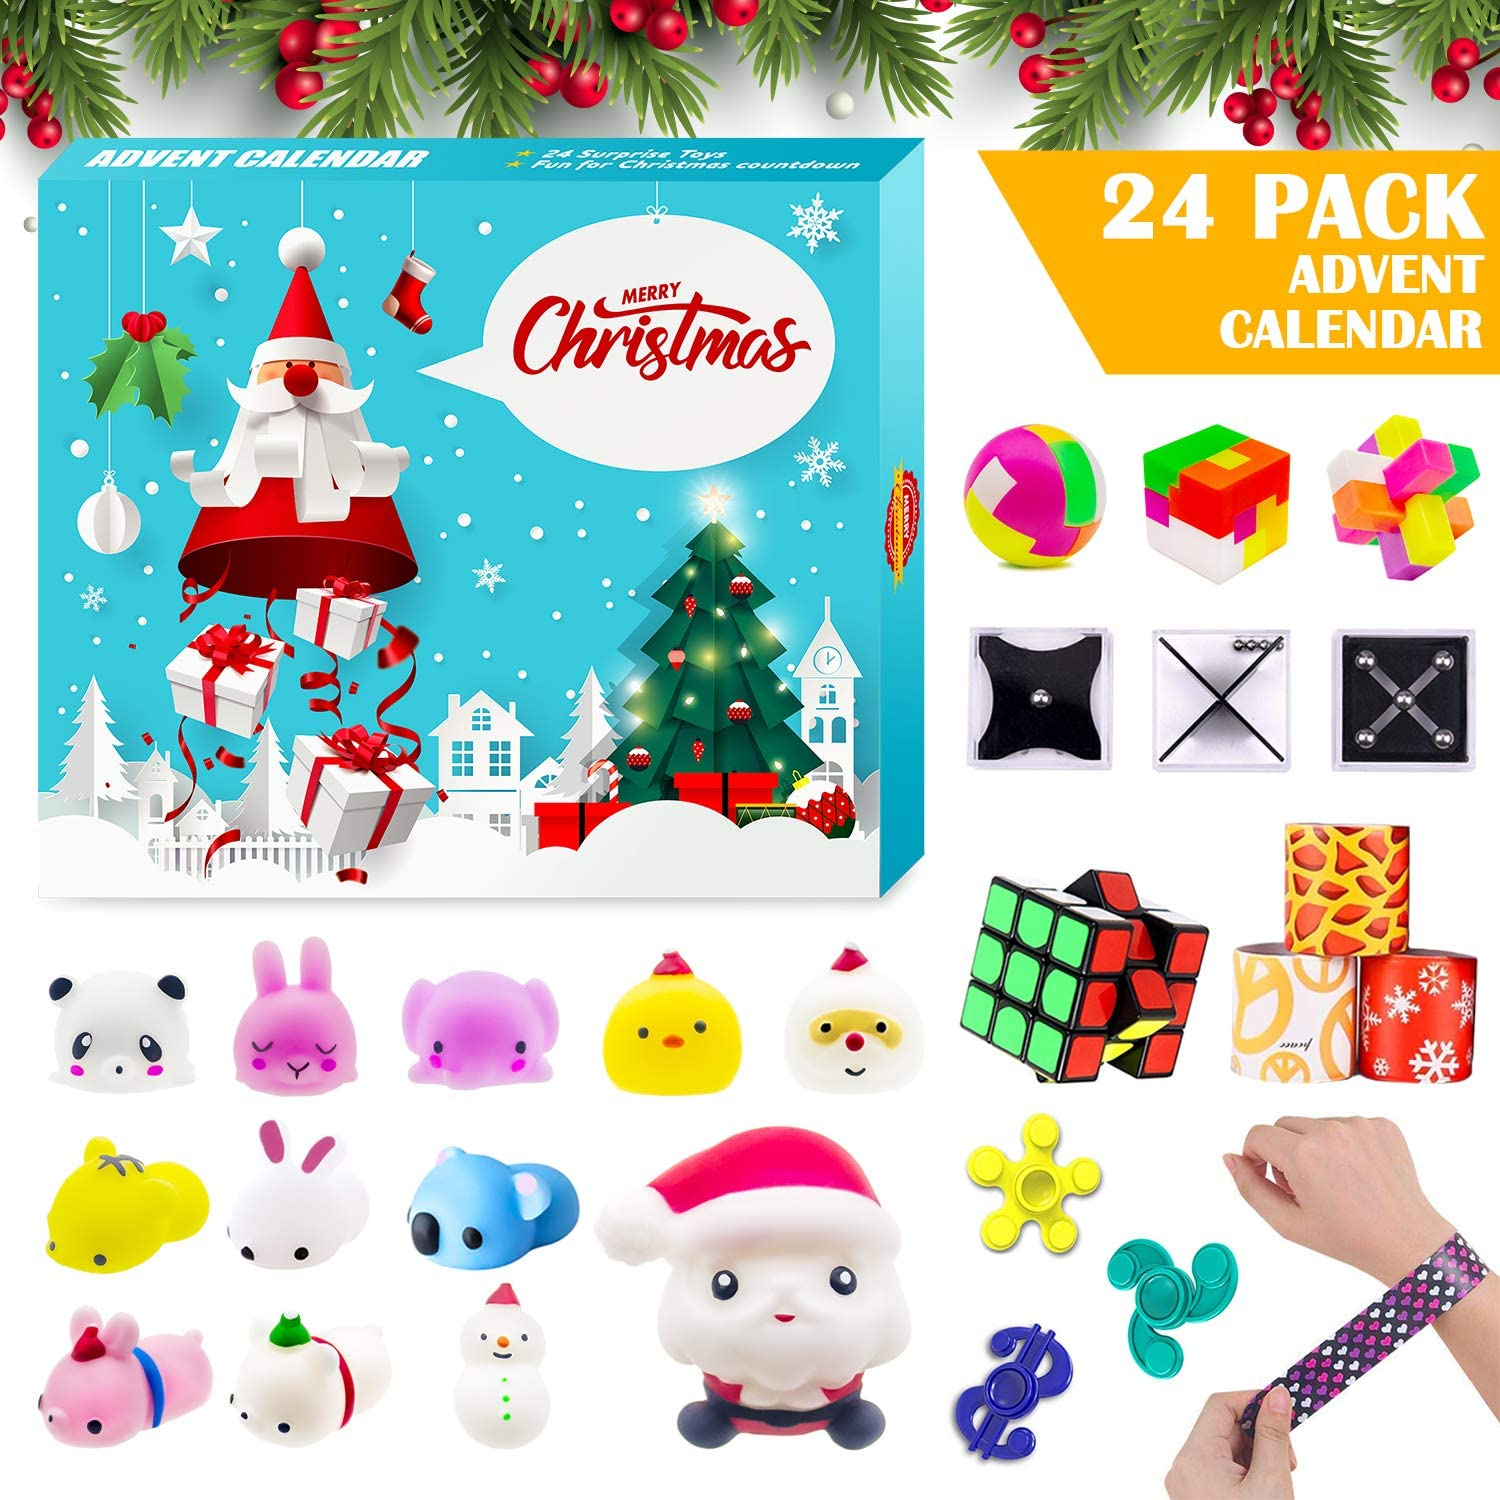 Amazon Com Advent Calendar 2020 Christmas Countdown Calendar 24 Pcs Fidget Relief Stress Toys For Count Down Xmas Holiday Party Favor Kids Adults Challenge Home Kitchen